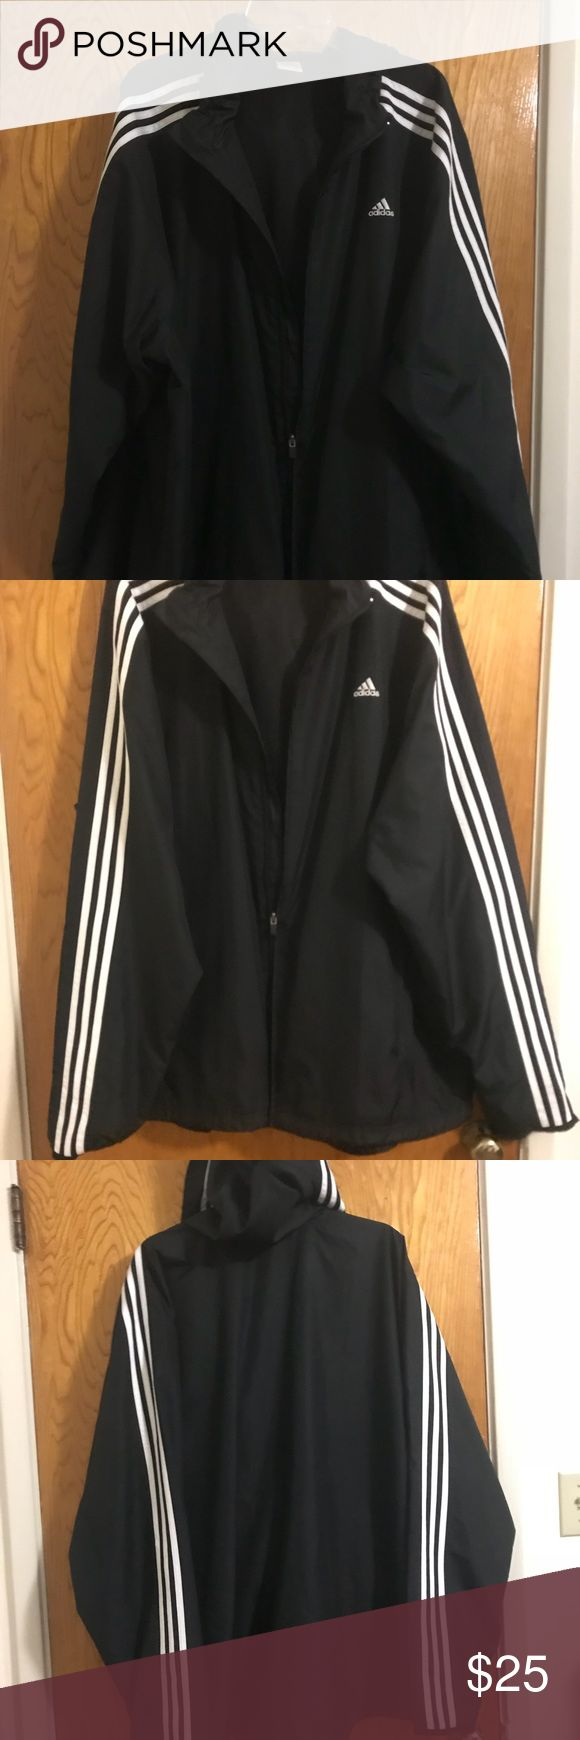 Adidas Jacket Men's 2XL zip up with a hoodie. The jacket was hardly worn so it's in EUC. Only flaw is that the zipper gets stuck.  #2XL #adidas adidas Jackets & Coats Windbreakers